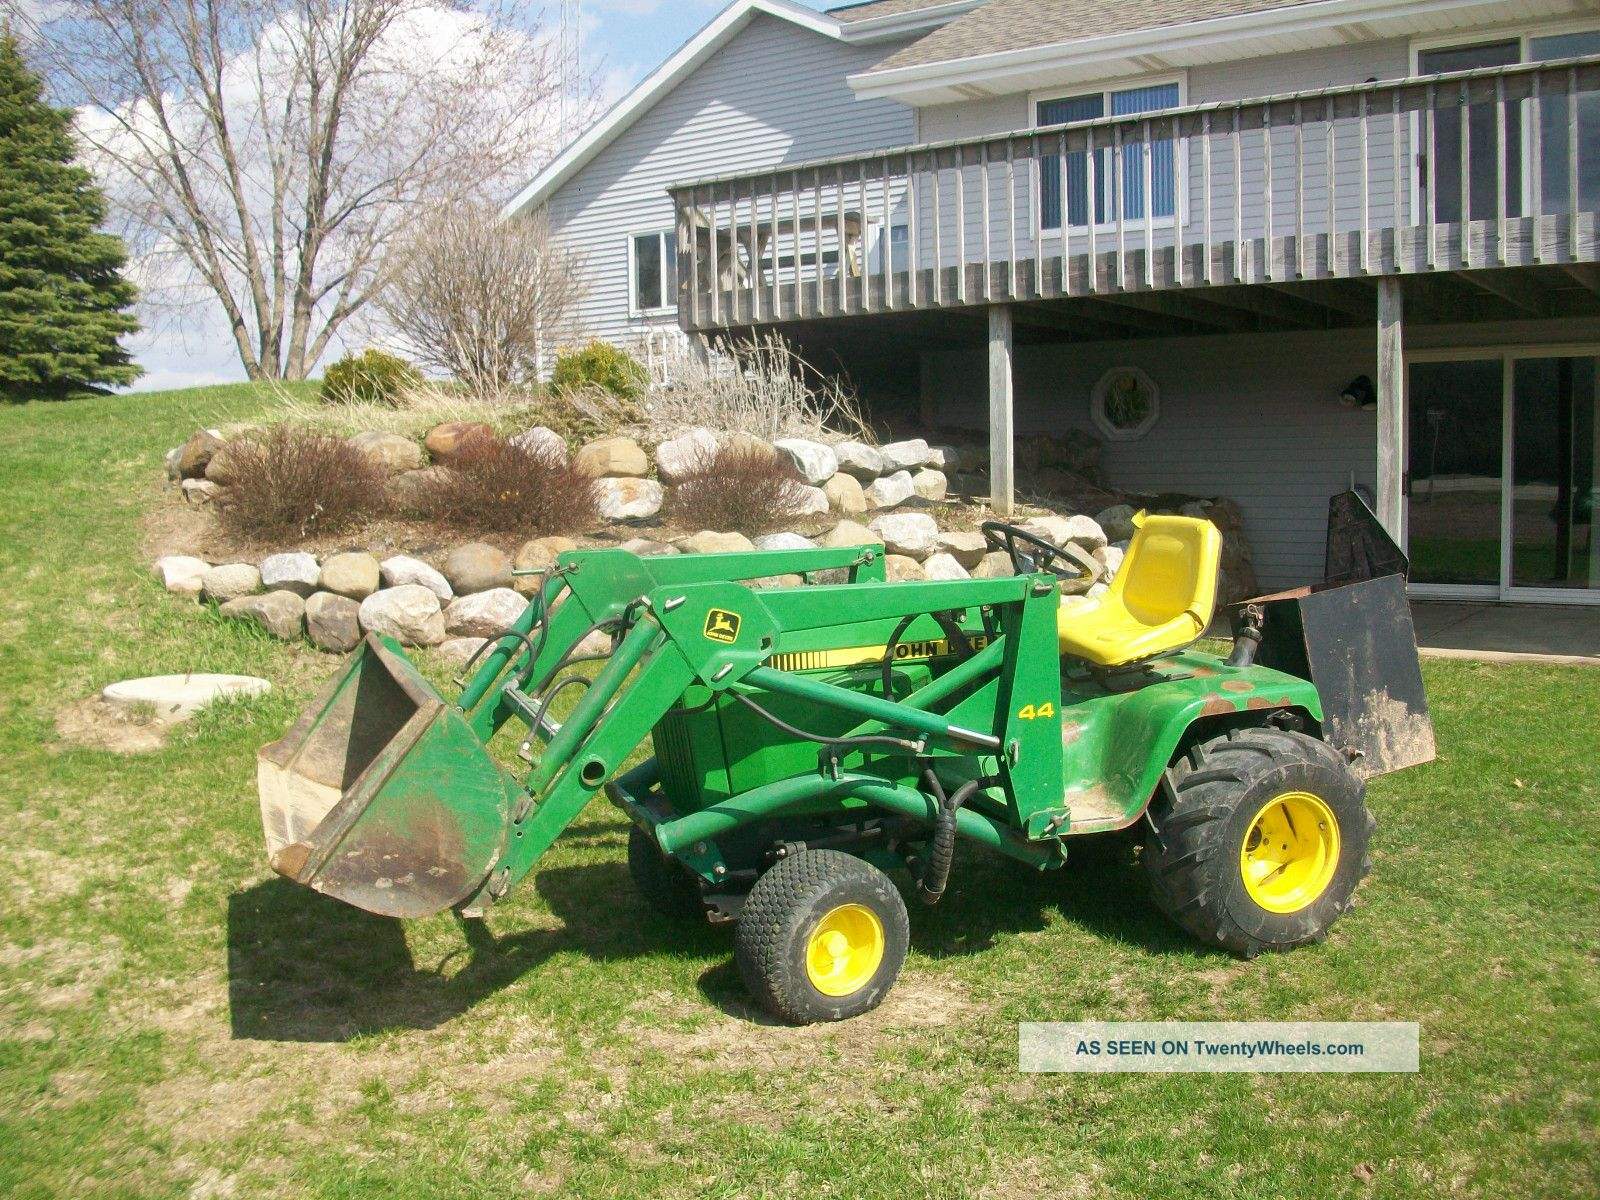 3 point hitch Three Point Hitch in addition 257121 Jd Hydraulic Snow Blade  patibility additionally John Deere 420 Garden Tractor Engine in addition Showthread furthermore Diagram Of John Deere 420 Garden Tractor. on john deere 455 hitch